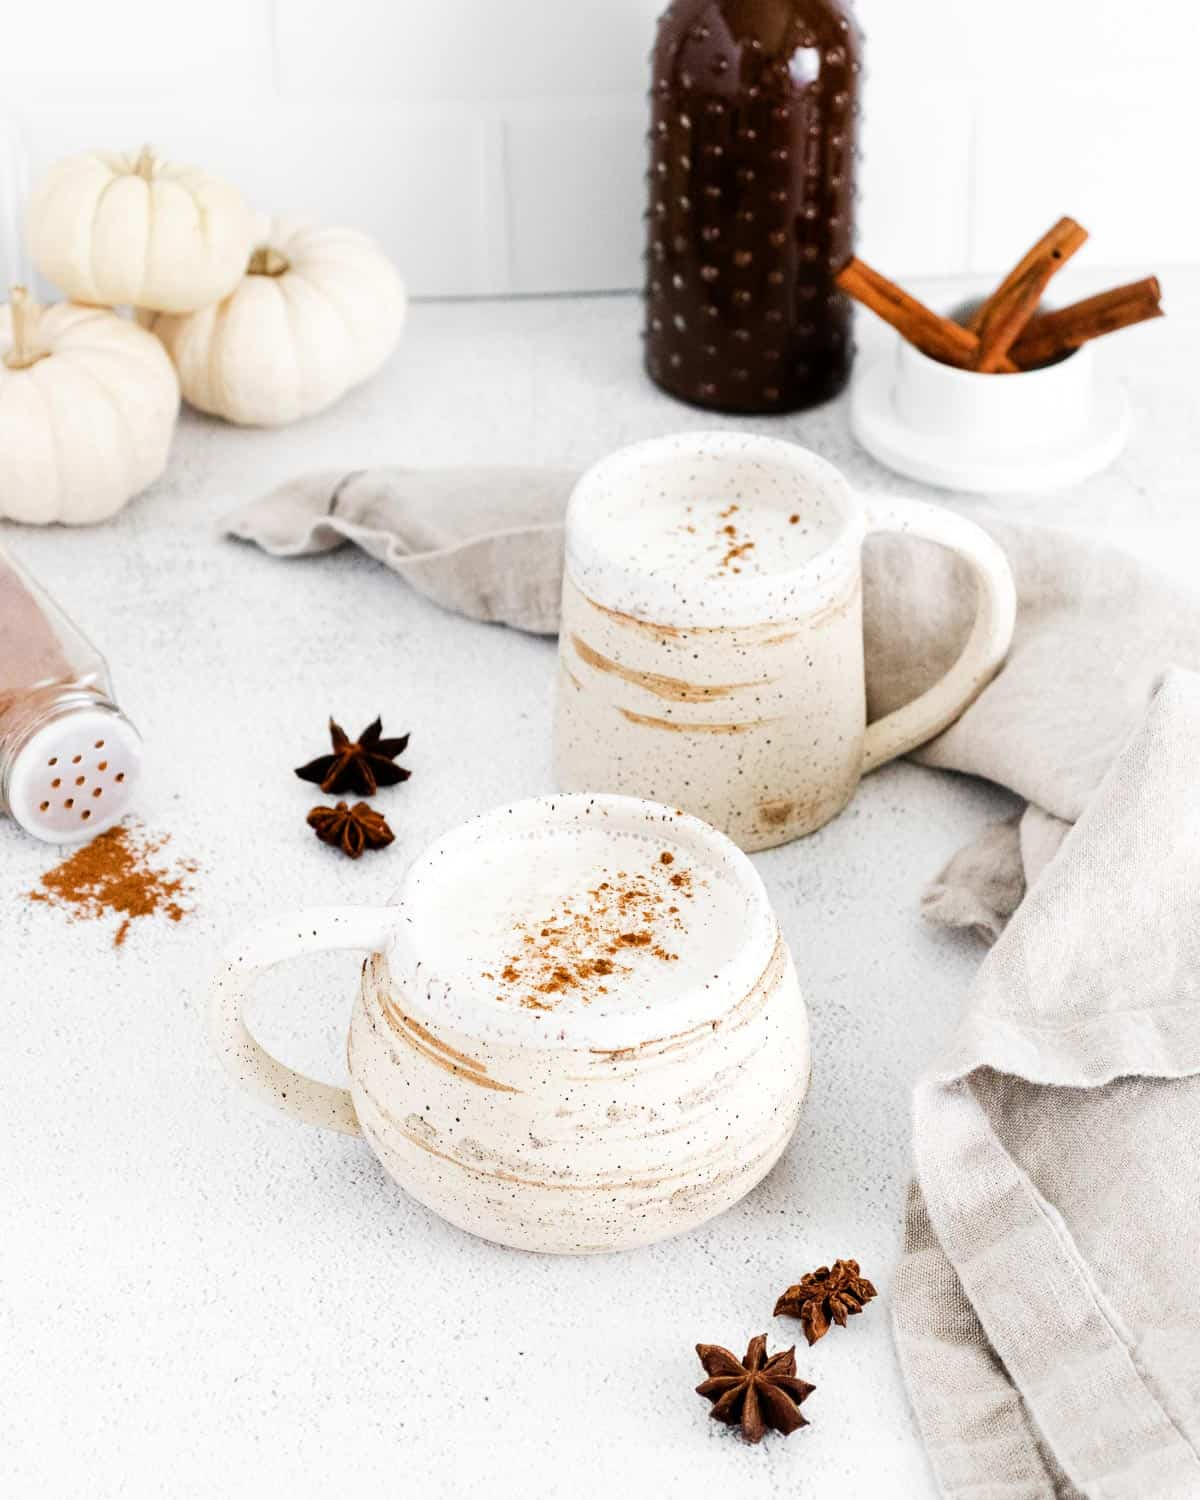 Pumpkin spice latte in white and earth tone mugs. Spices also pictured.